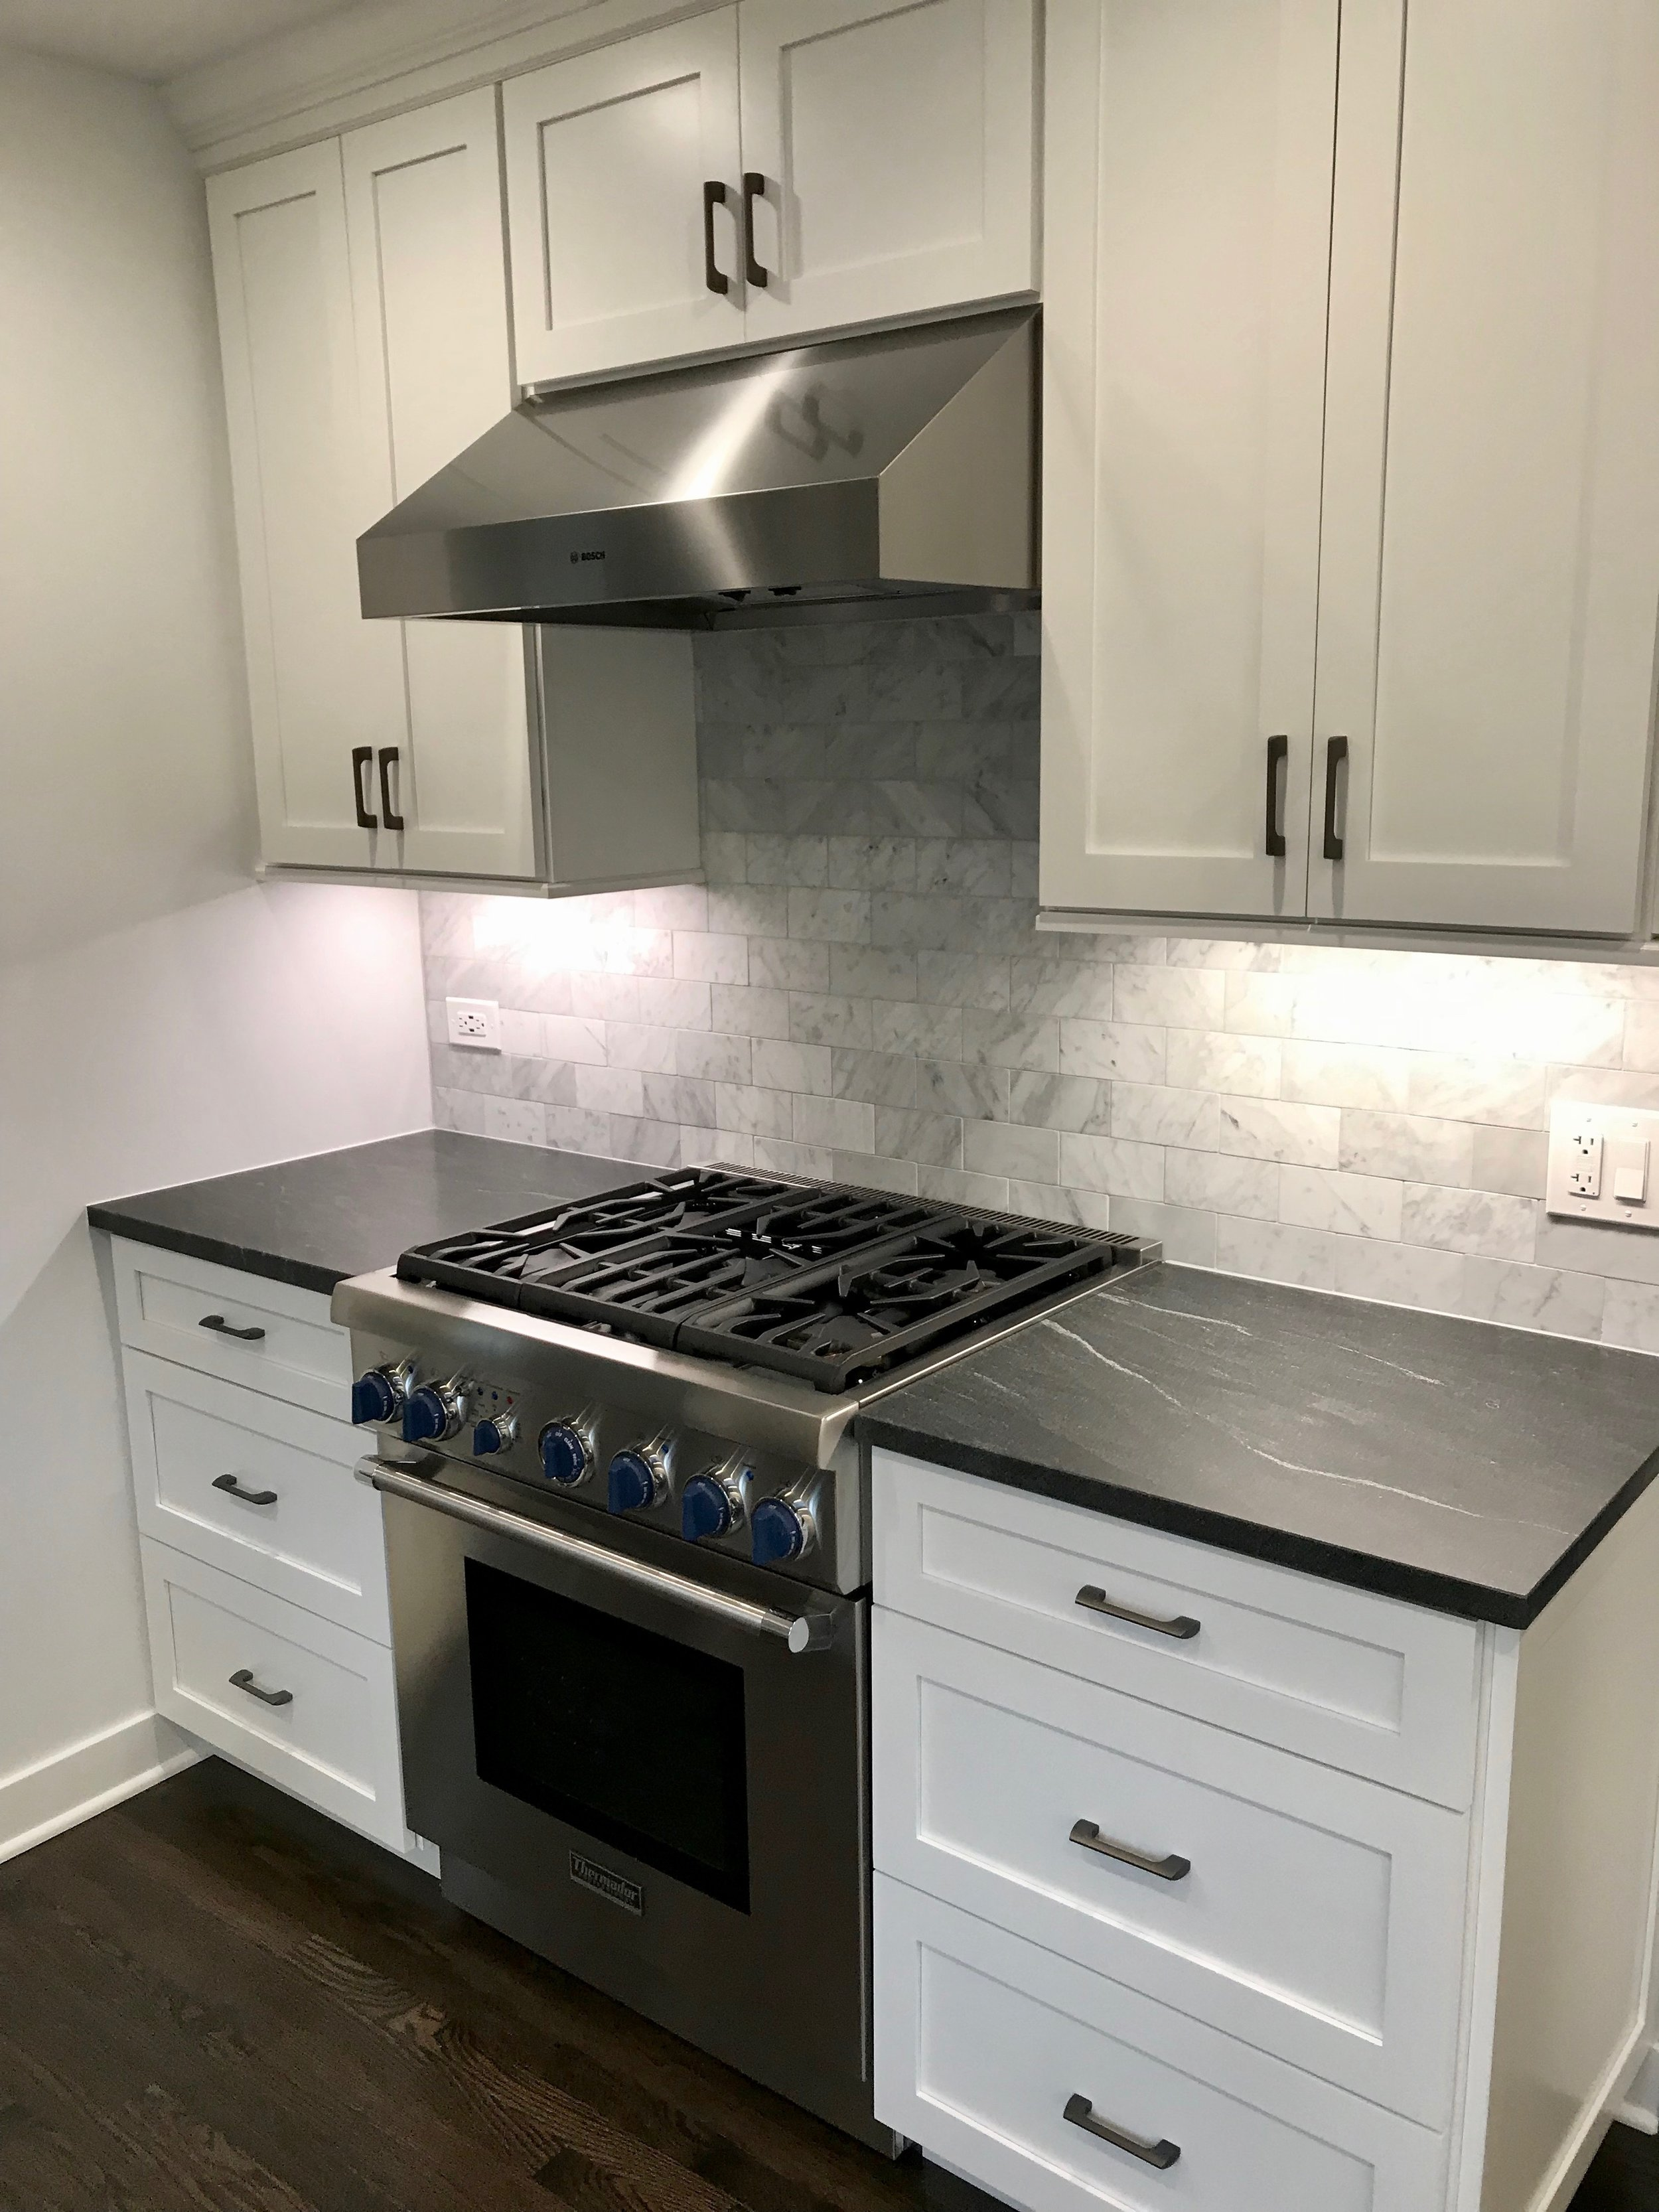 Semi-custom or custom cabinetry is a good choice for many kitchens.It allowed us to center the range on the wall and add valuable storage and prep space on both sides.